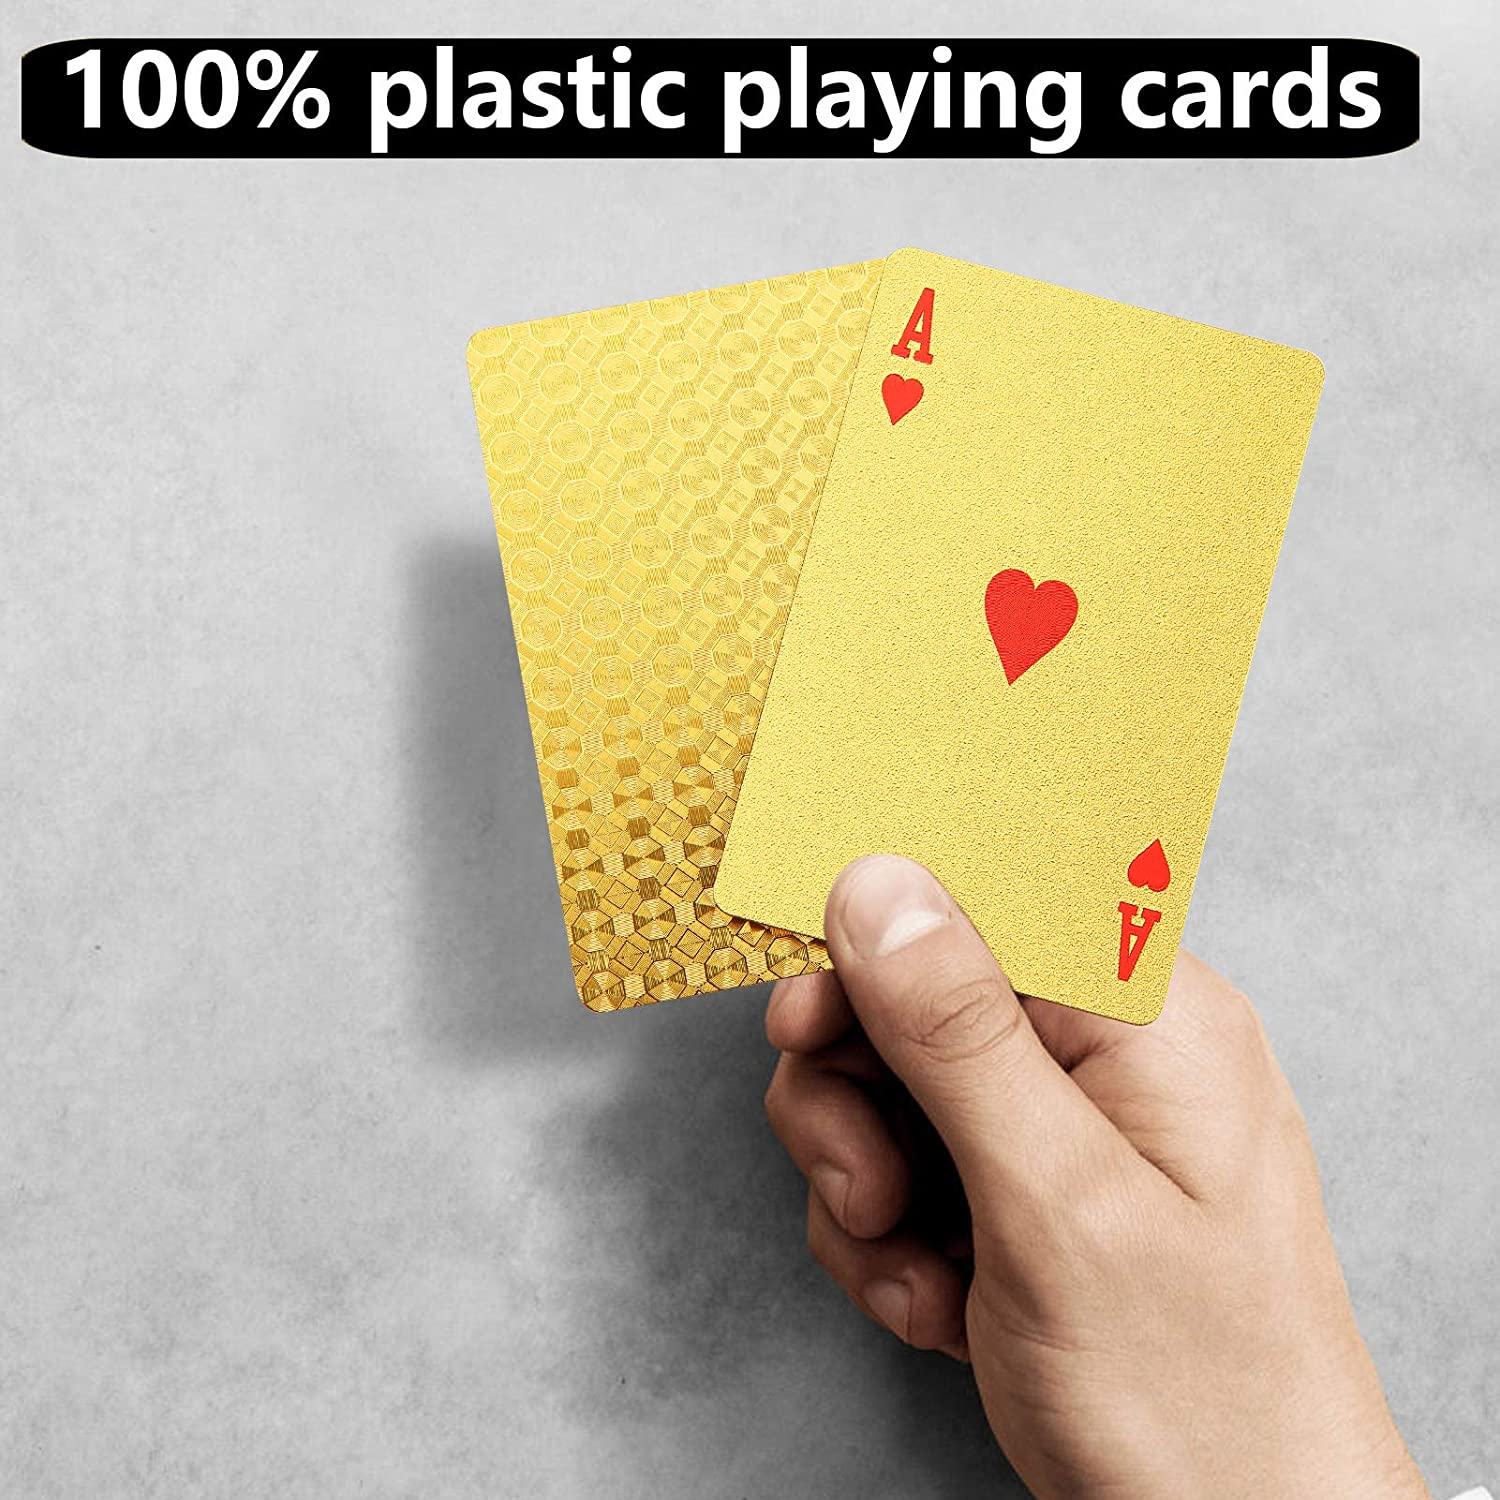 Nlager 2 Decks Waterproof Playing Cards Canasta Durable Flexible Patterned Design PET Poker Playing Cards for Blackjack Black -2pcs Euchre Casino Grade Pinochle Card Game